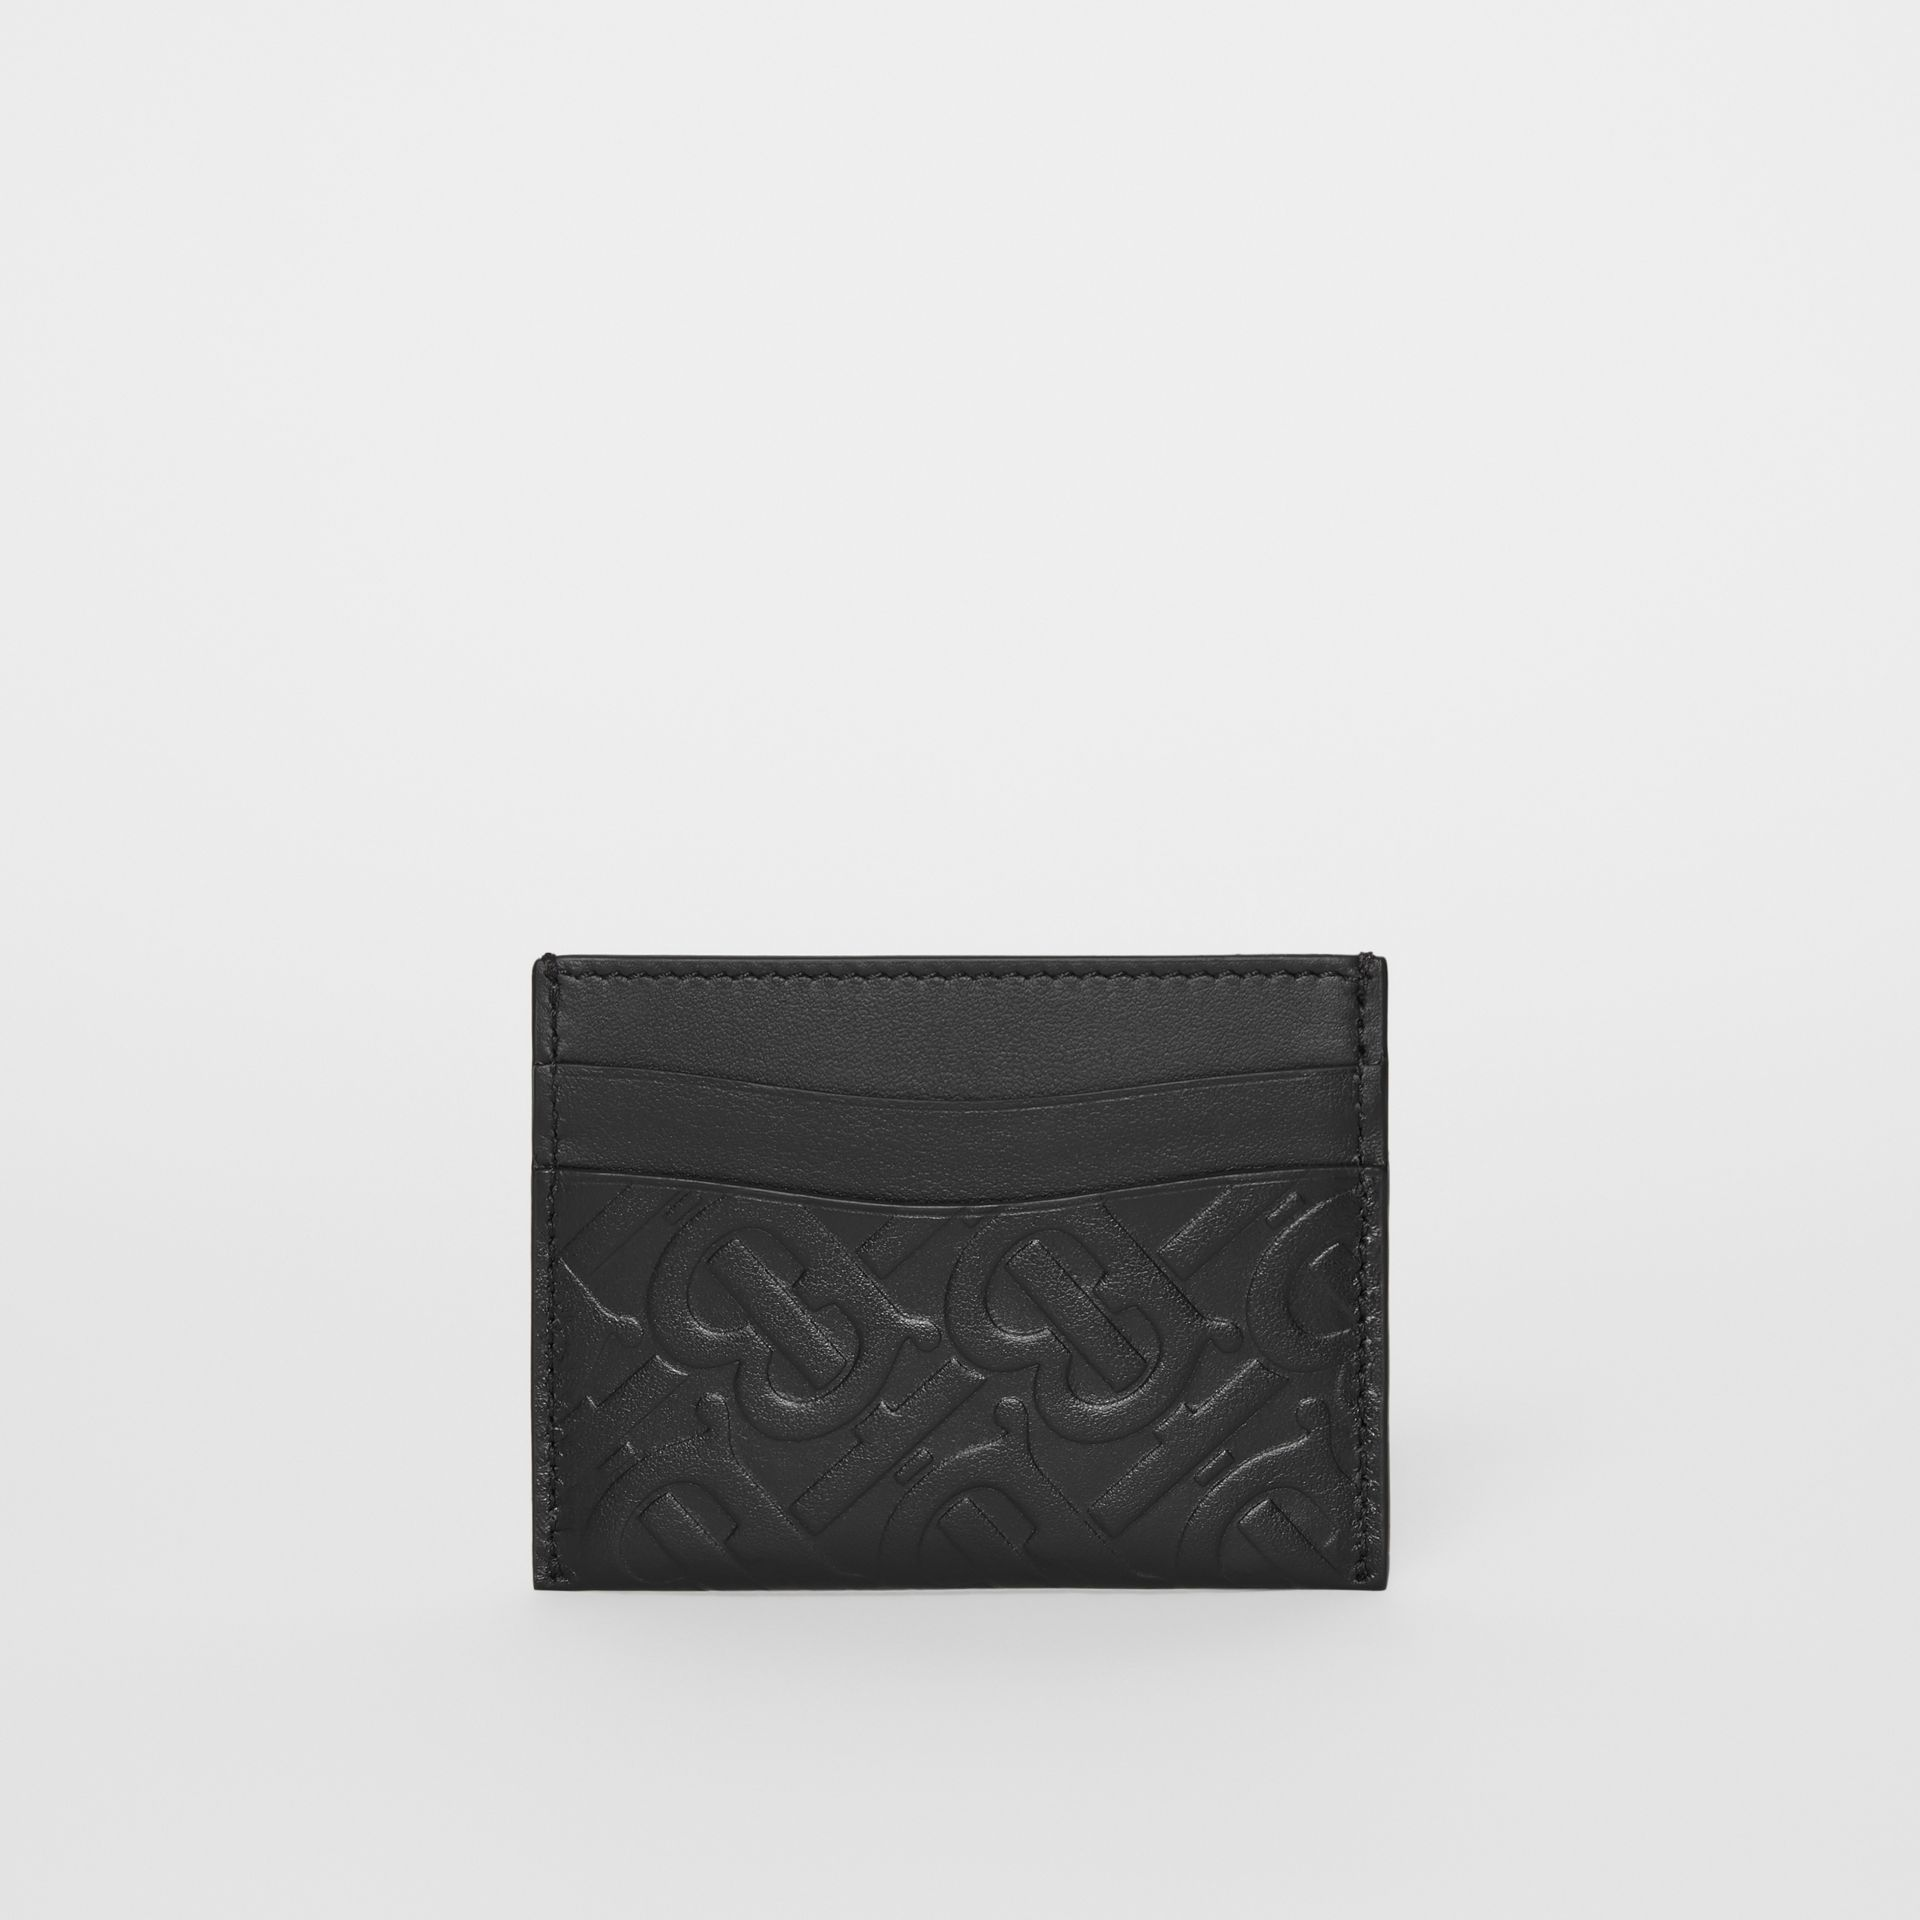 Monogram Leather Card Case in Black - Women | Burberry - gallery image 4